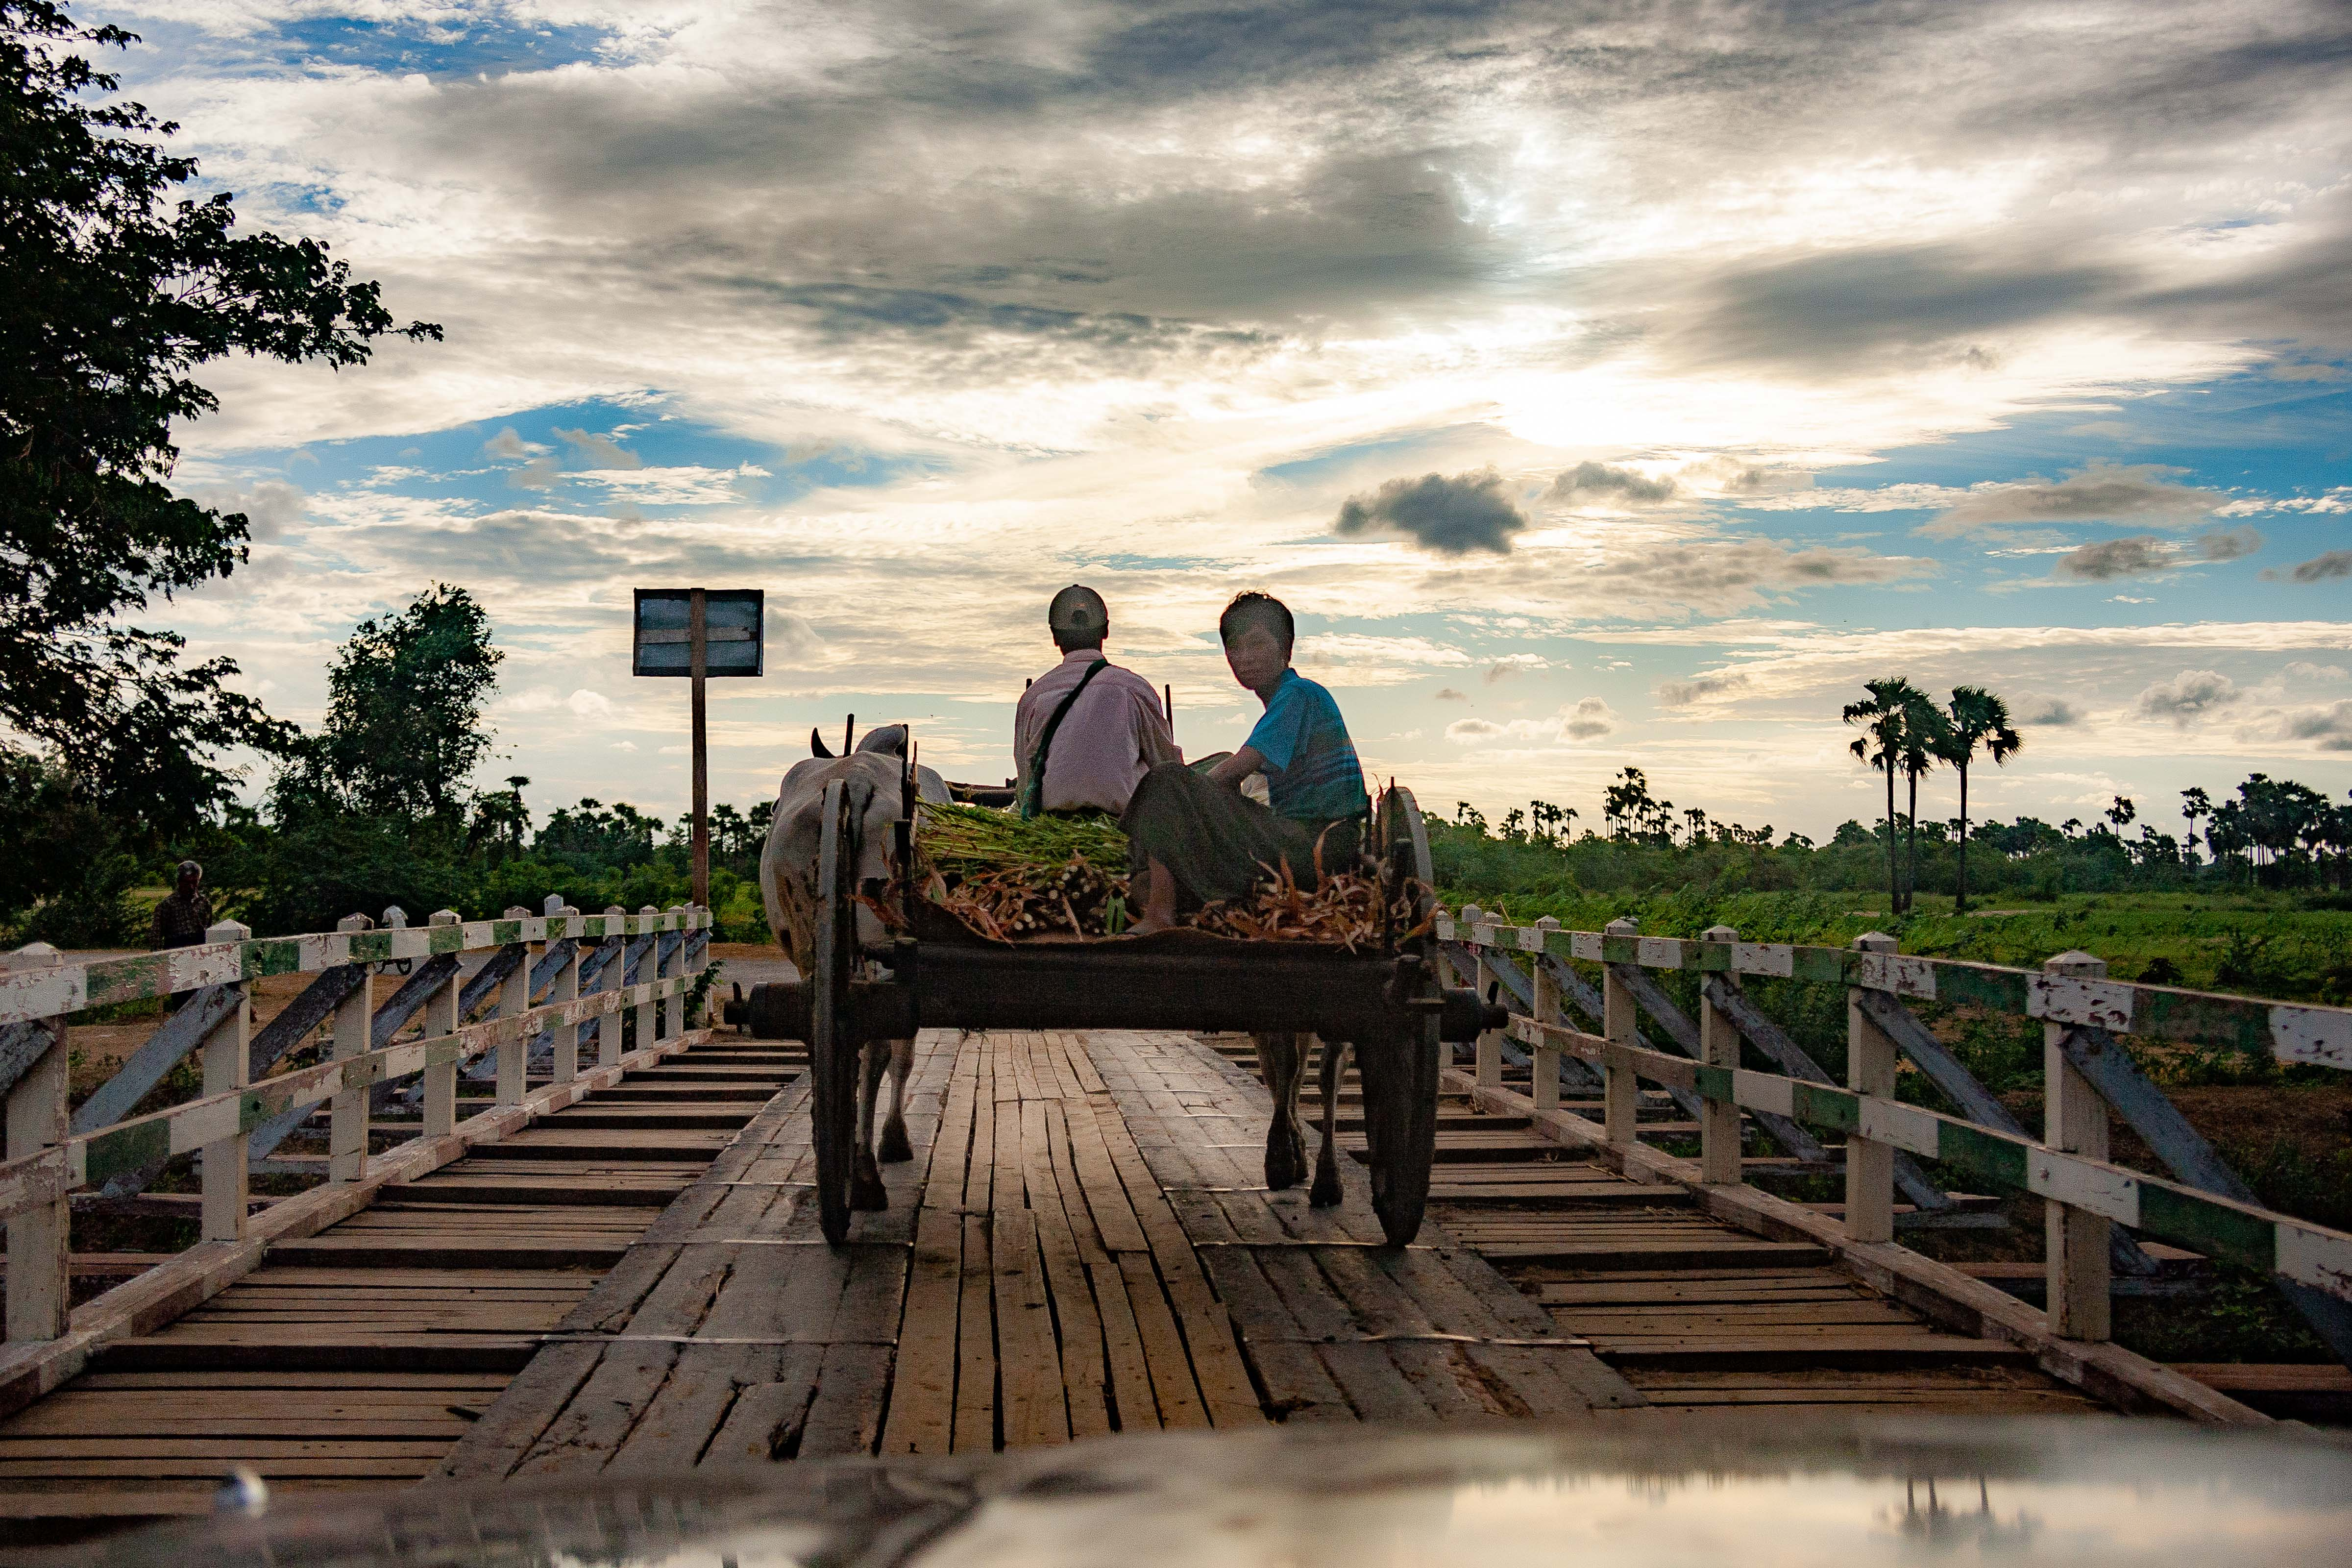 Myanmar, Mandalay Prov, Bagan Wagon On Bridge, 2009, IMG 4849